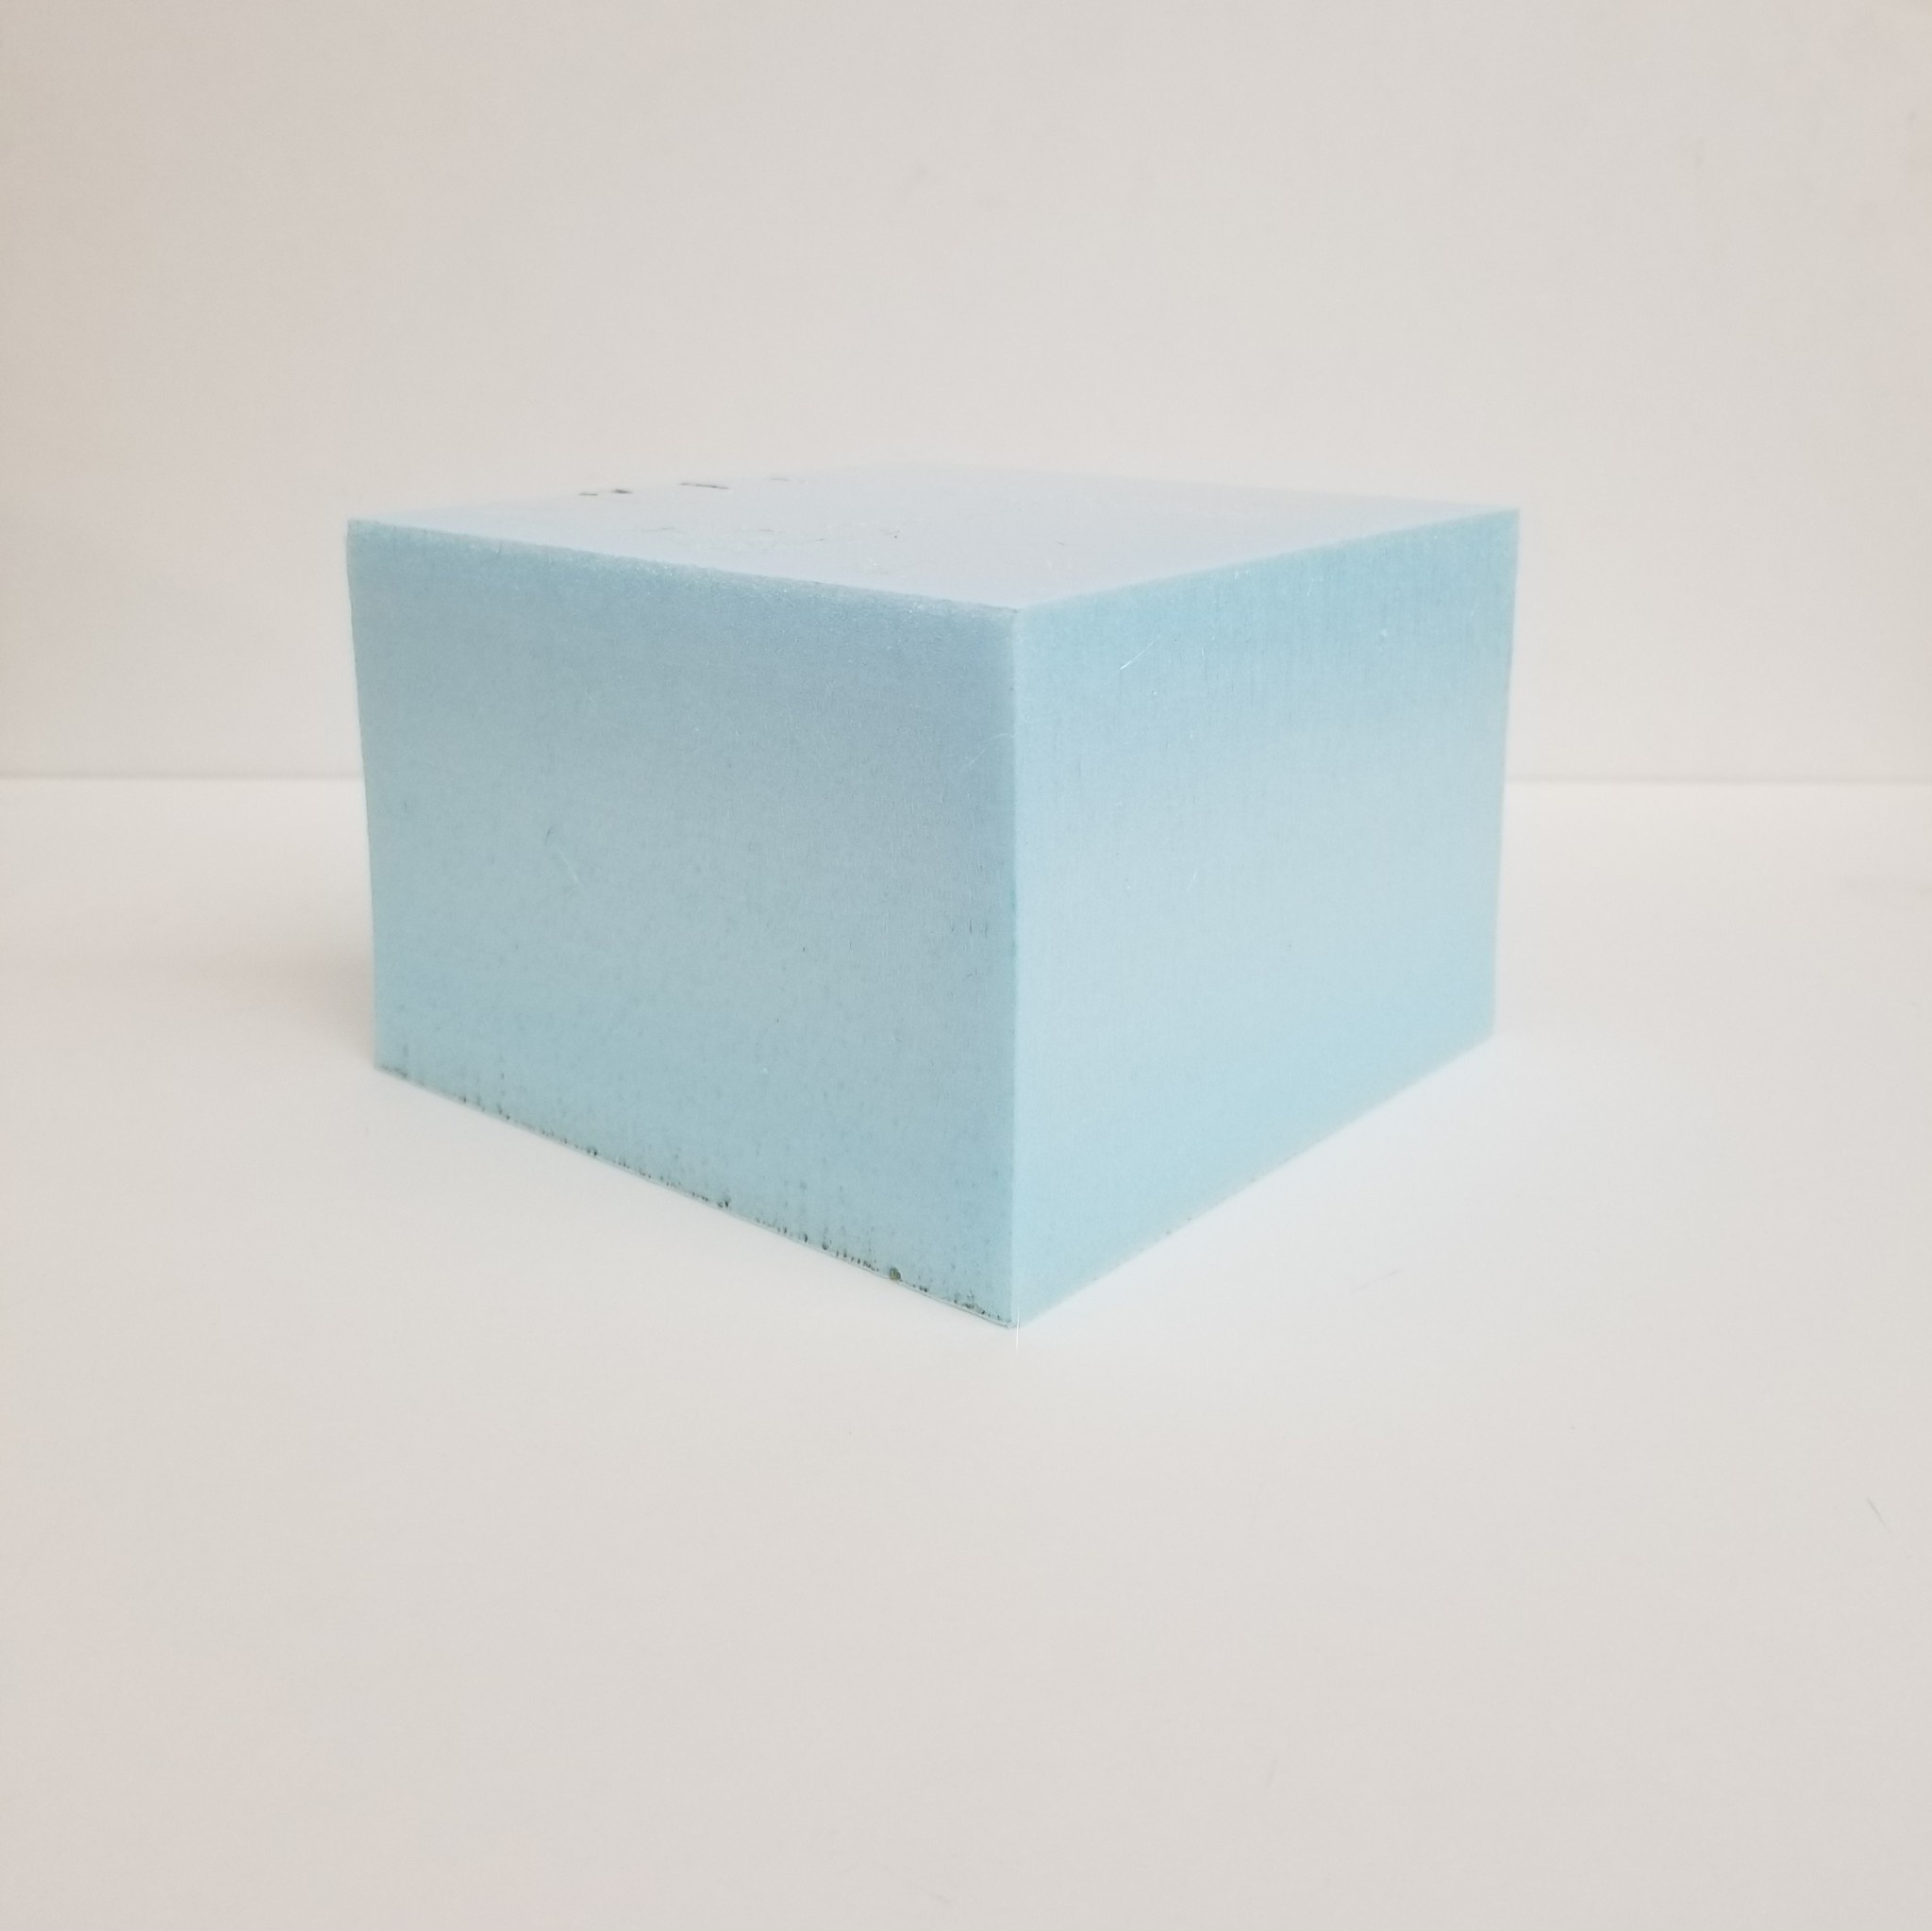 Blue Board Foam 6''x6''x4''